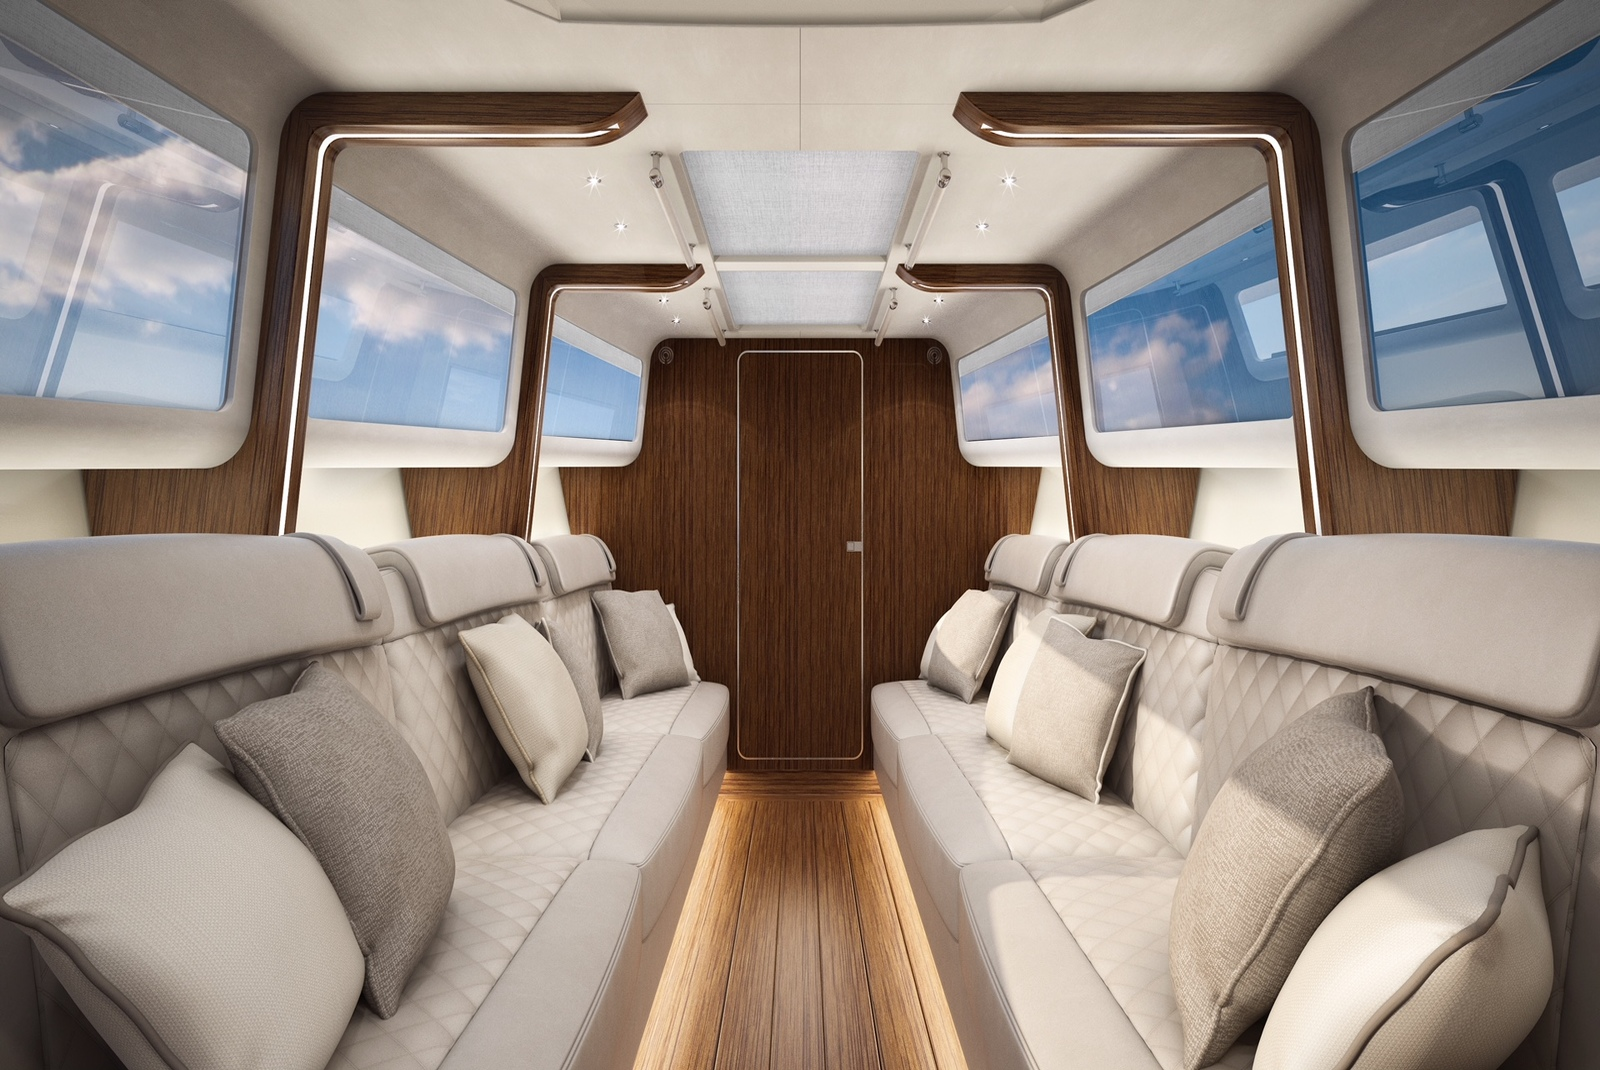 Turbocraft Silverfin Luxury Boat